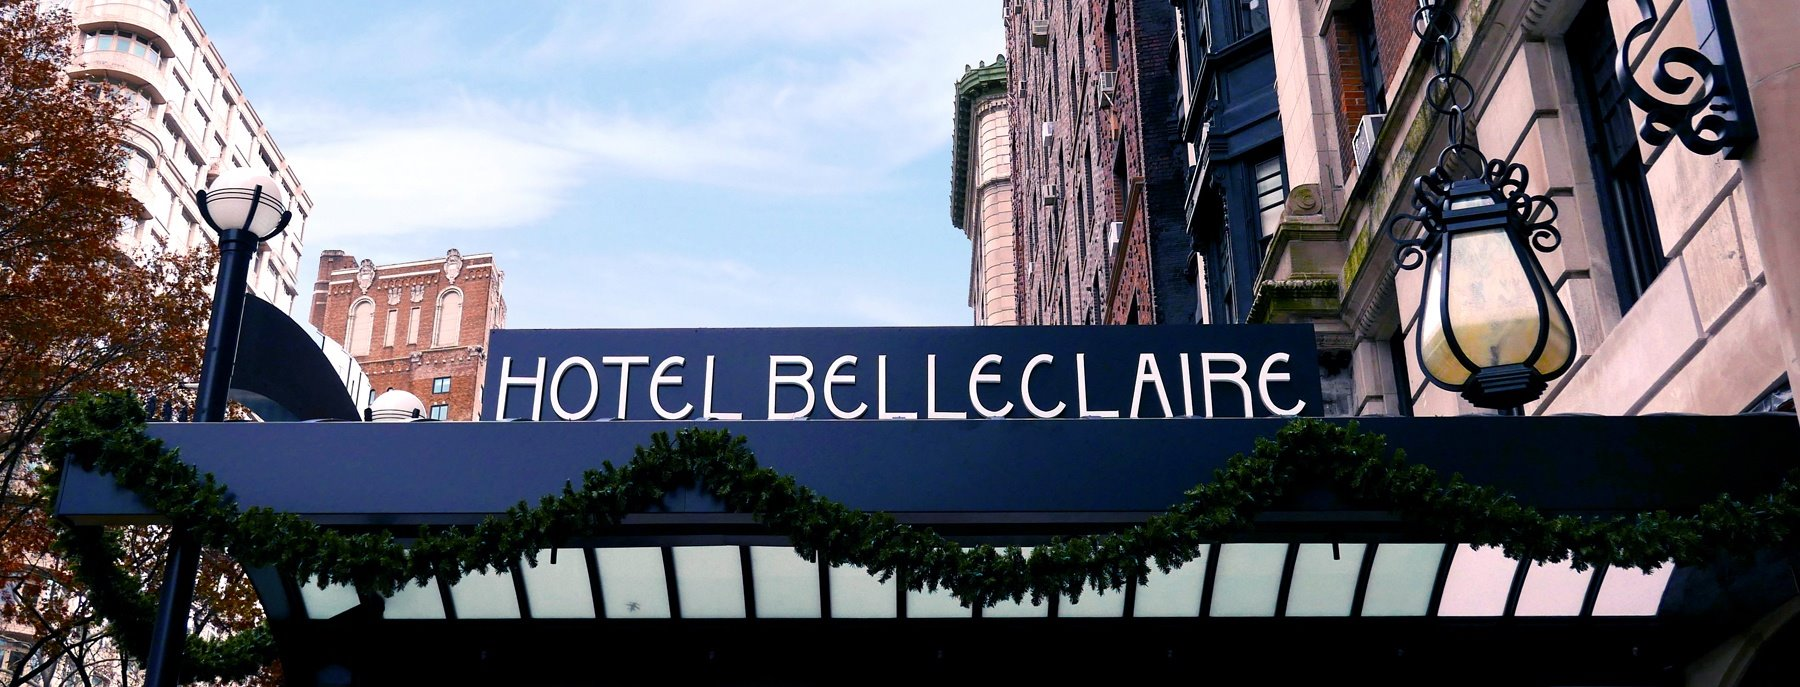 Hotel Belleclaire at New York